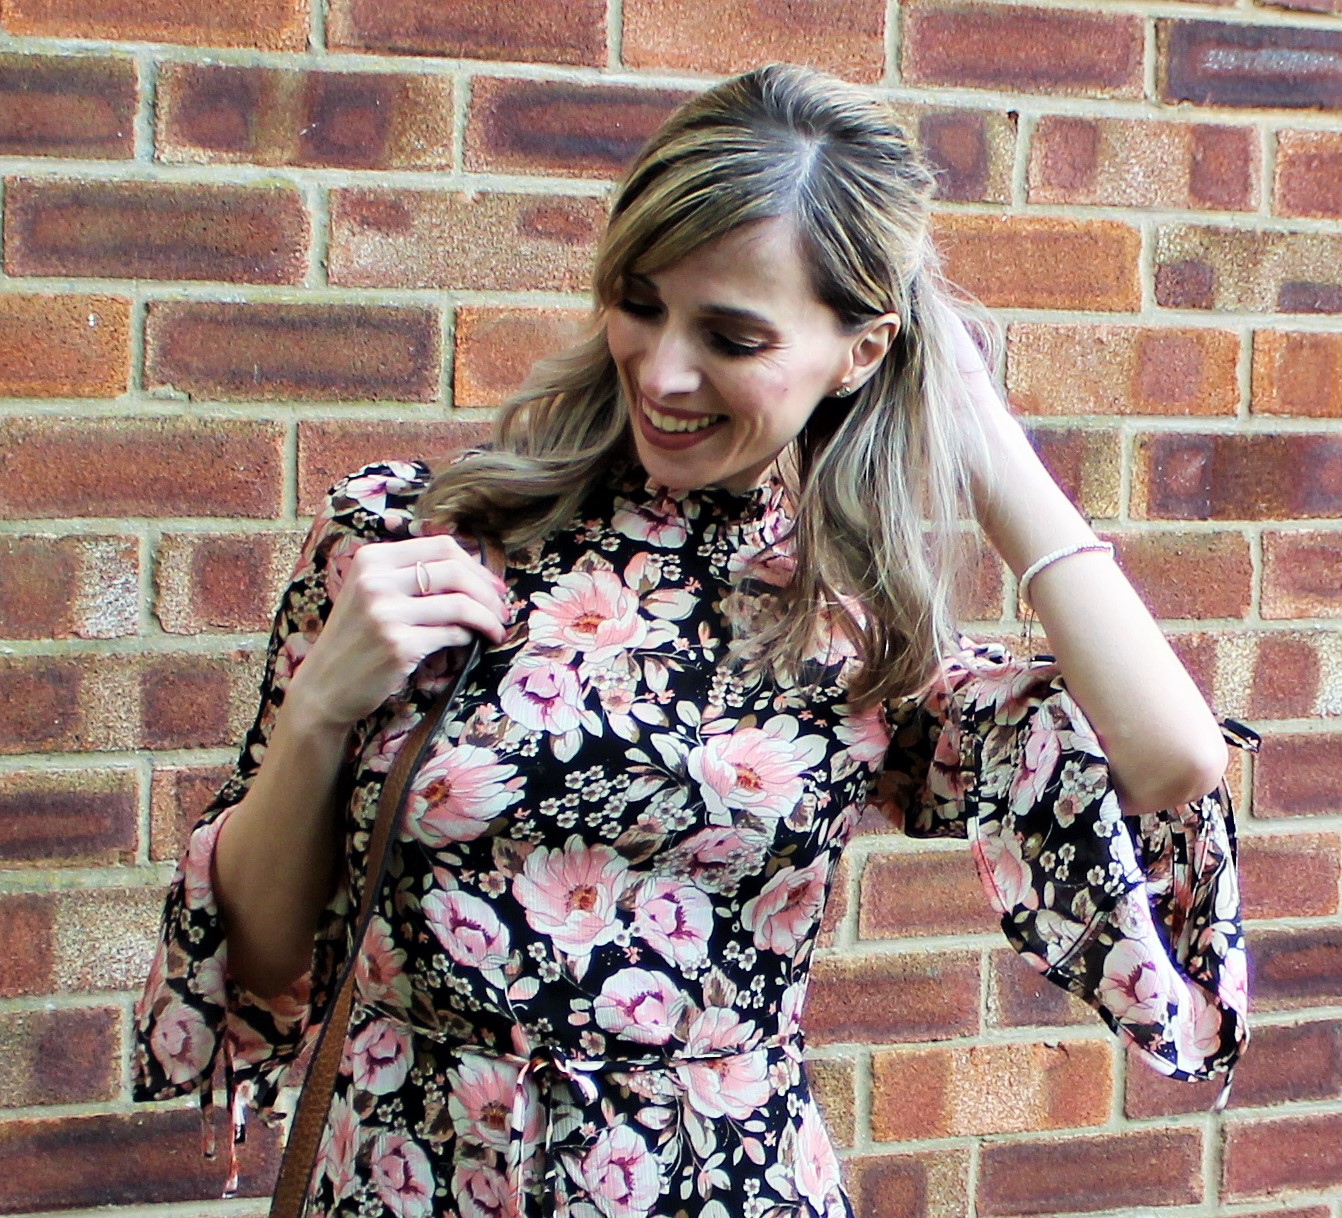 OOTD featuring a floral dress from Topshop and beaded bracelet from Lola Rose - 4